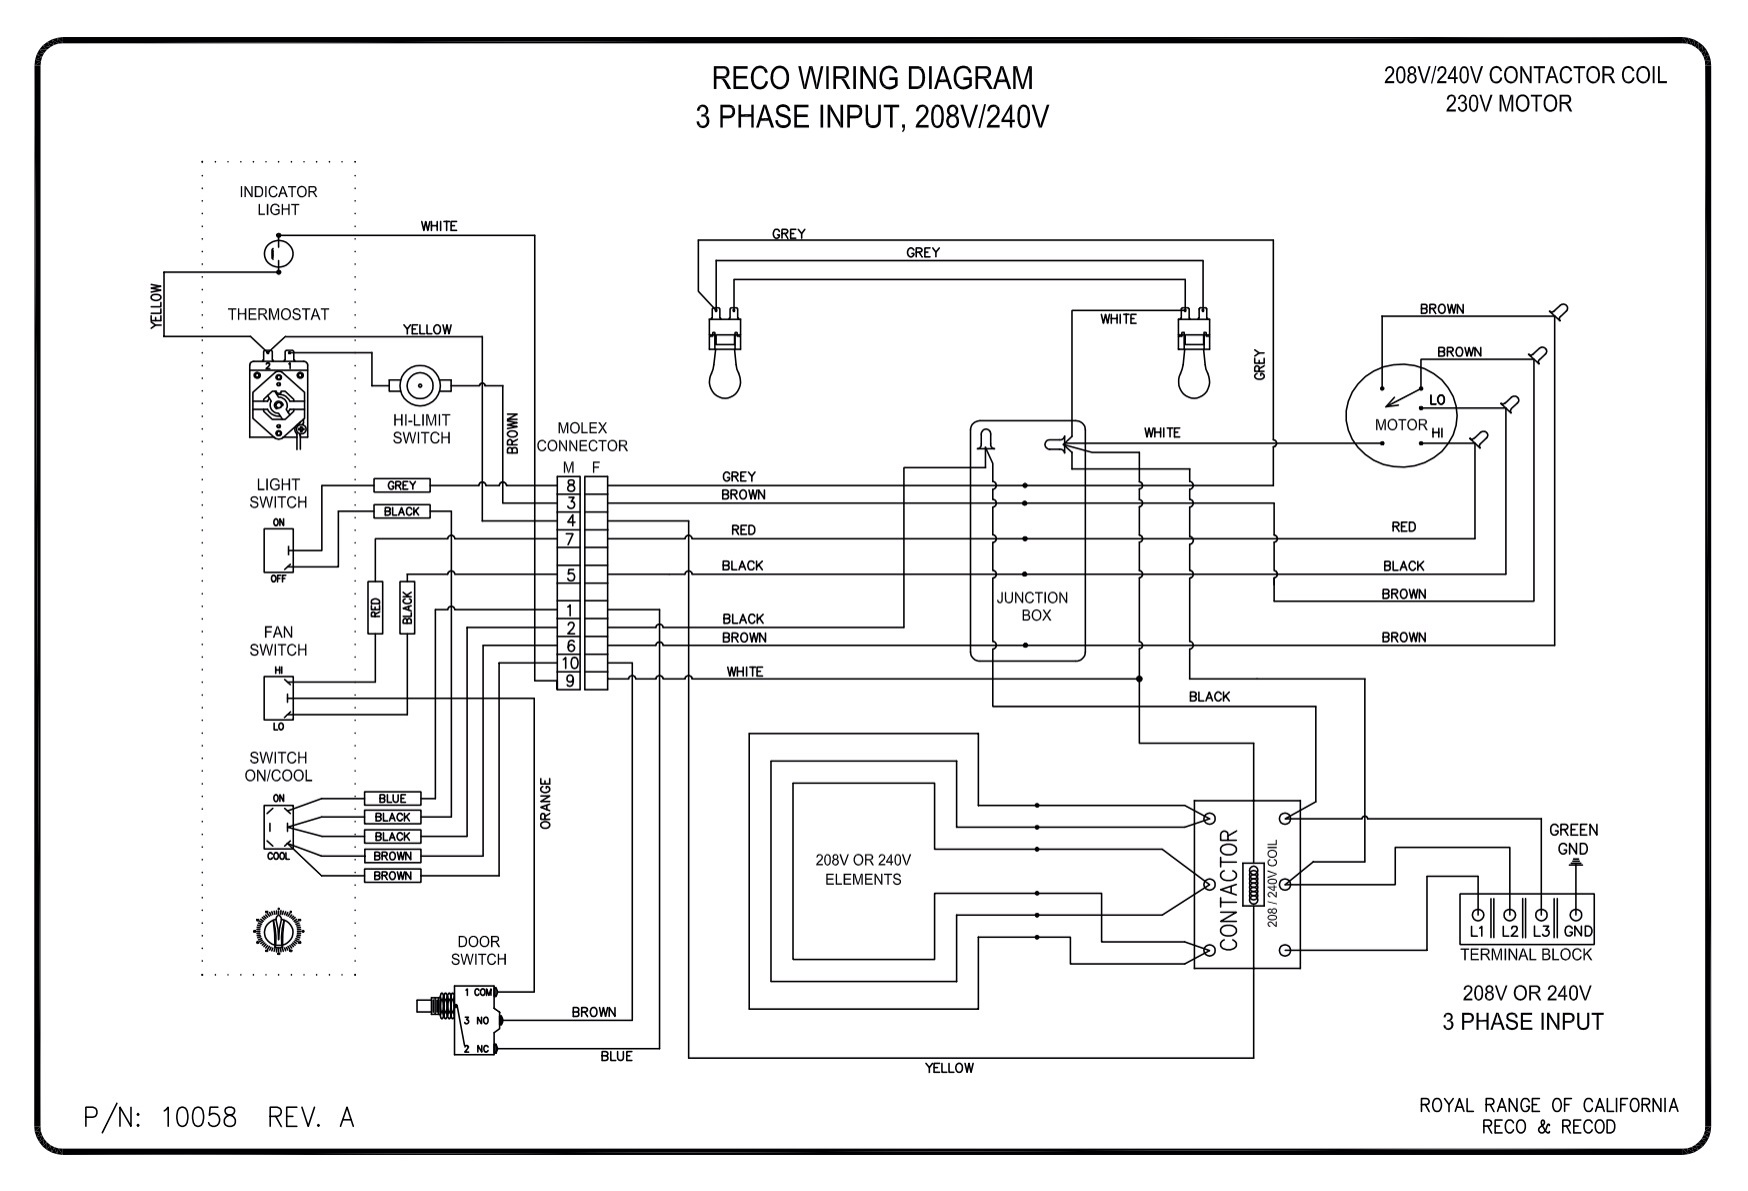 wiring diagrams - royal range of california, Wiring diagram